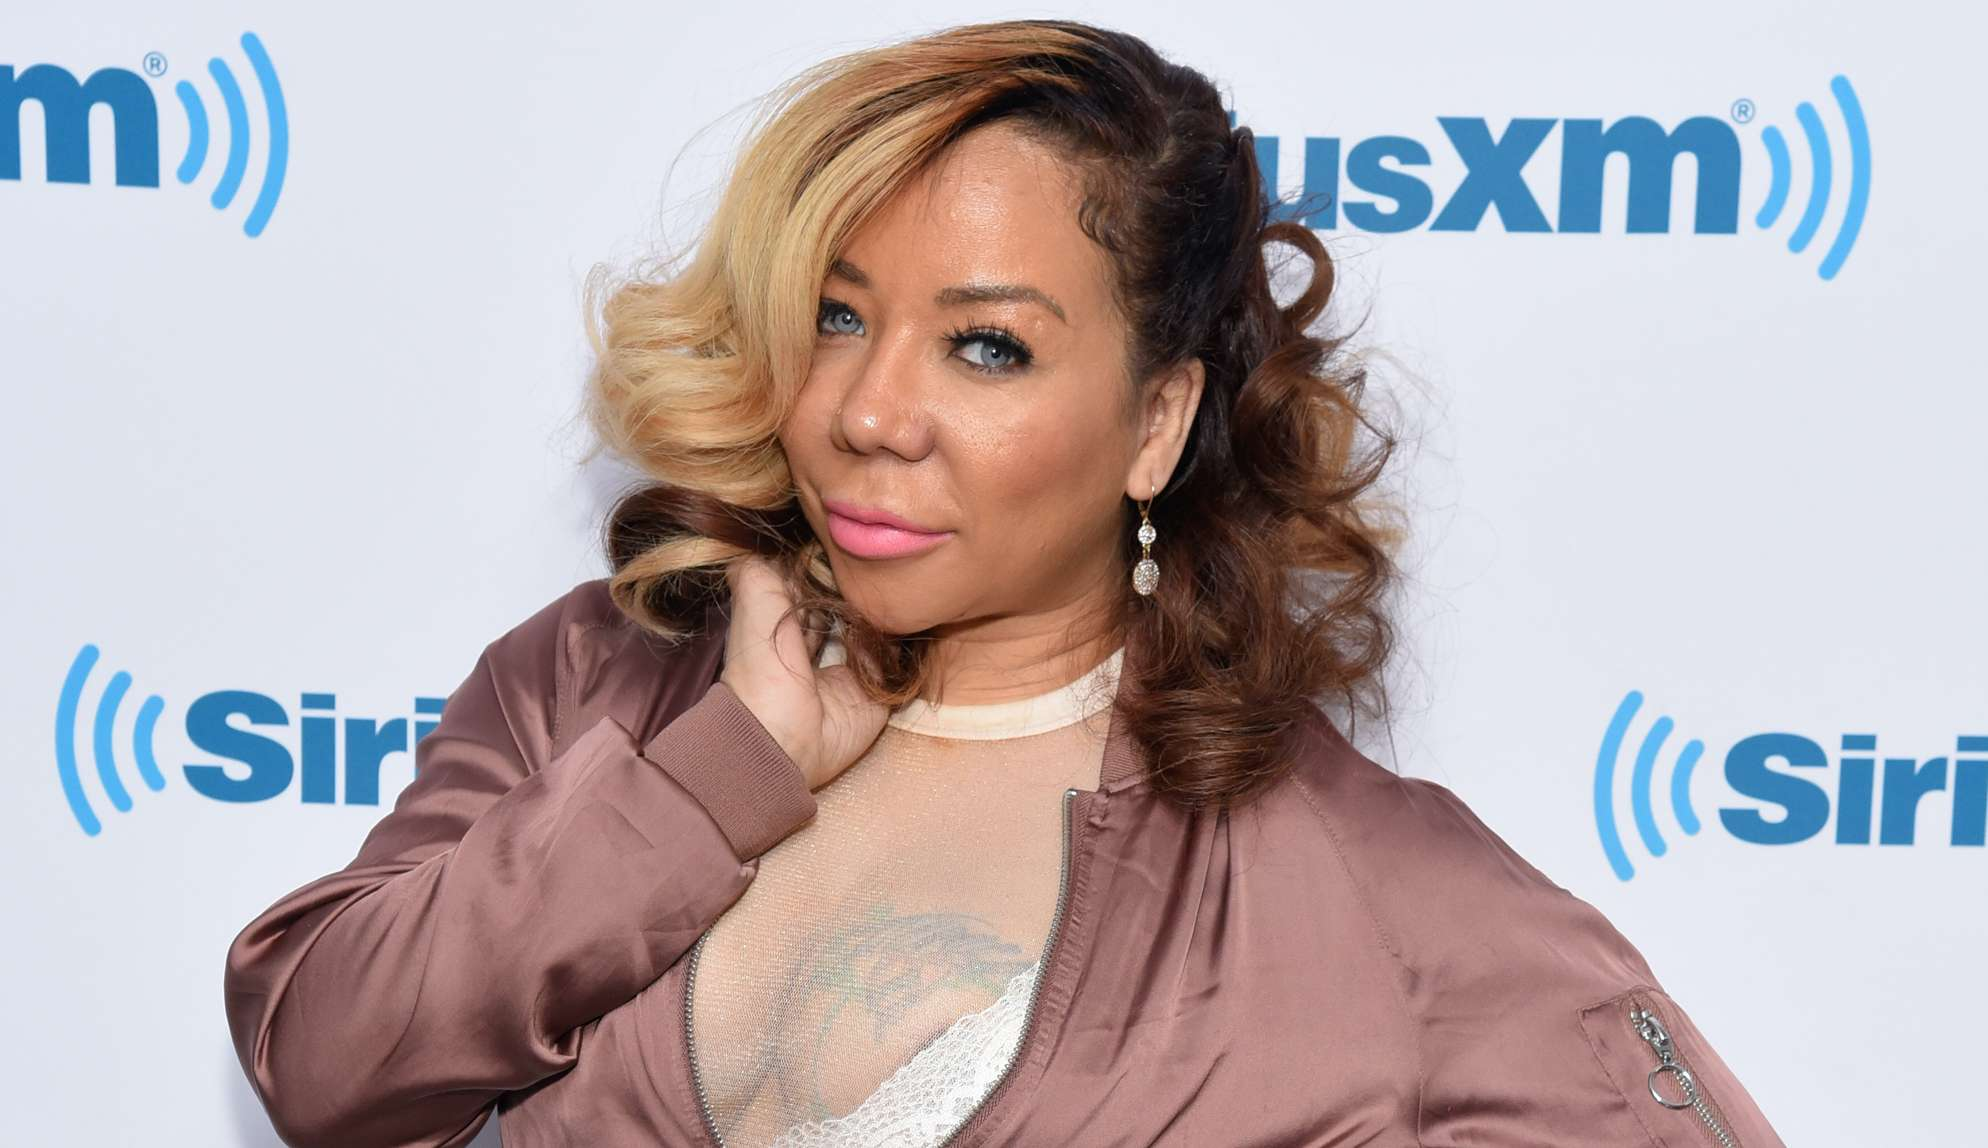 Tiny Harris Rocked A Fashion Nova Skin-Tight Outfit While Celebrating The Release Of Her New Single - Watch The Video